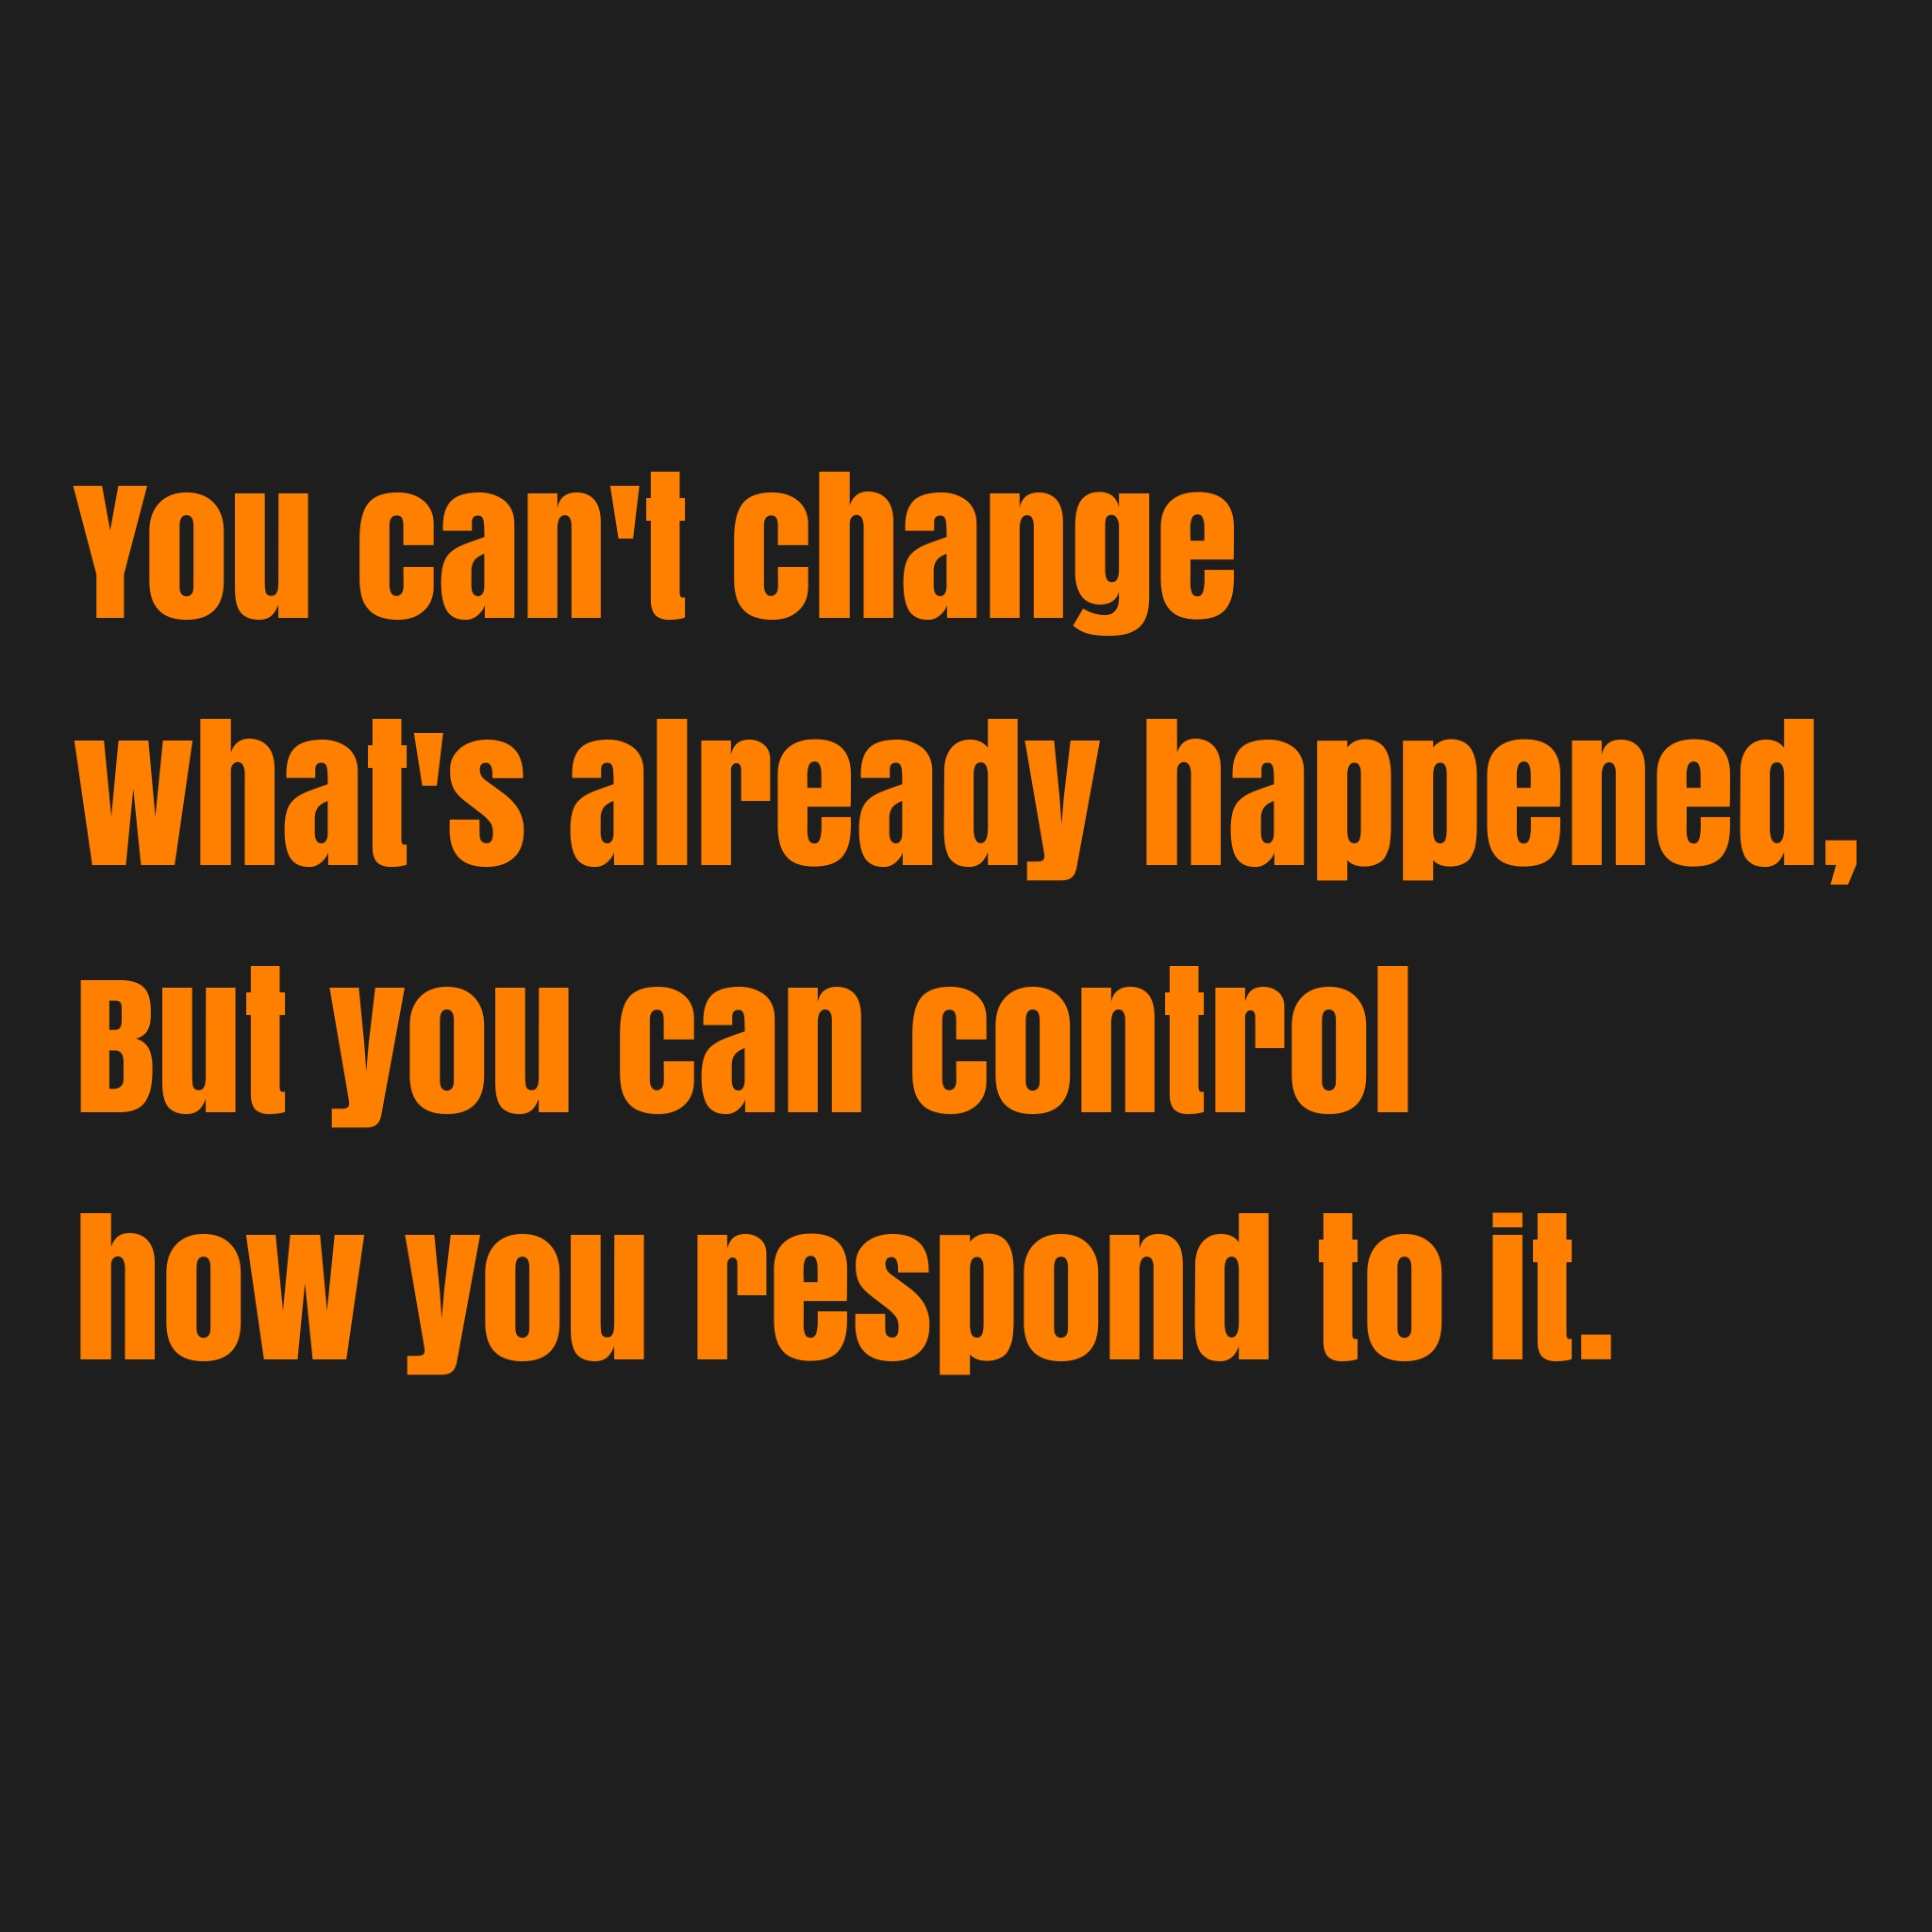 [Image] You have the control